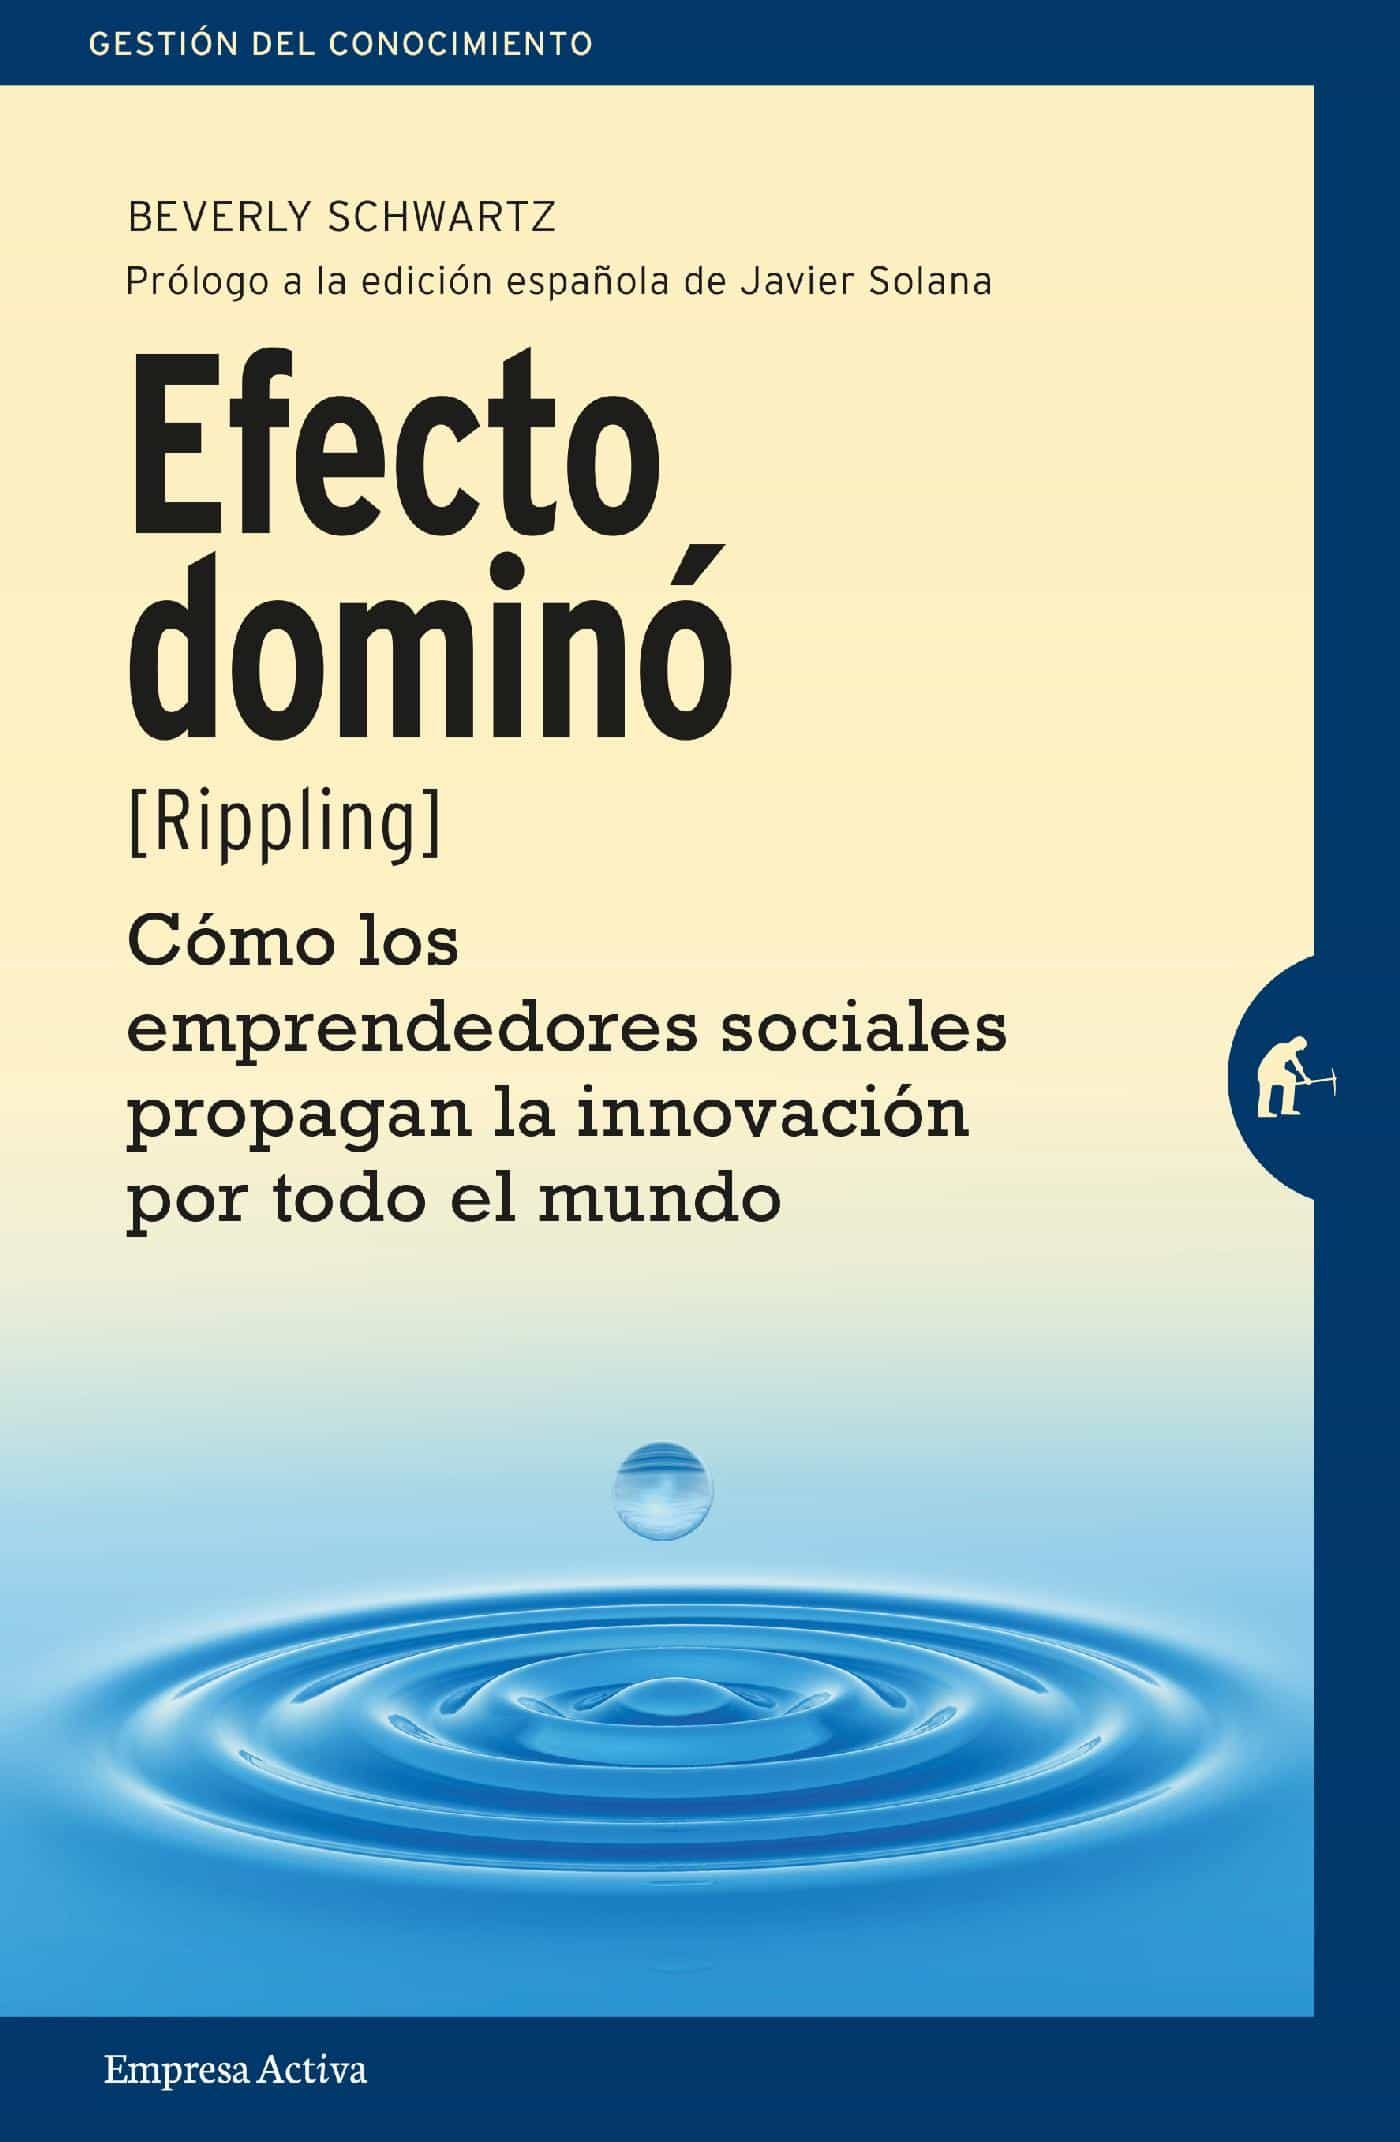 Descargar Libros Mc Graw Hill Pdf Gratis Efecto DominÓ Ebook Beverly Schwartz Descargar Libro Pdf O Epub 9788416715107